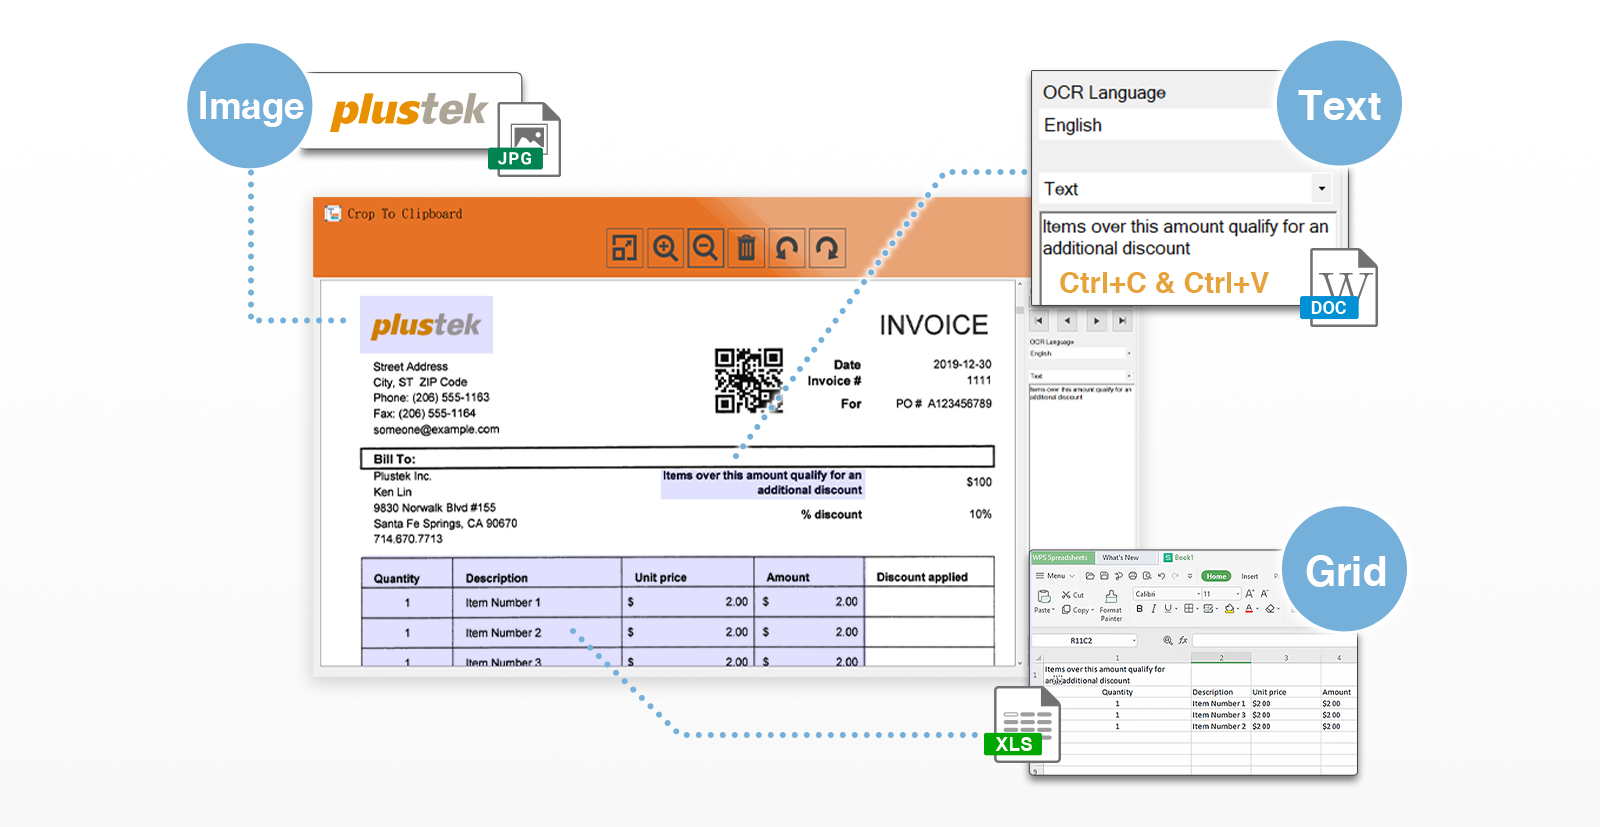 DocAction II embedded with clipboard tool, after you scan the file, you can crop and select the area you want to copy, then paste in other document. We also OCR the text and grid, so that you can edit the data easily